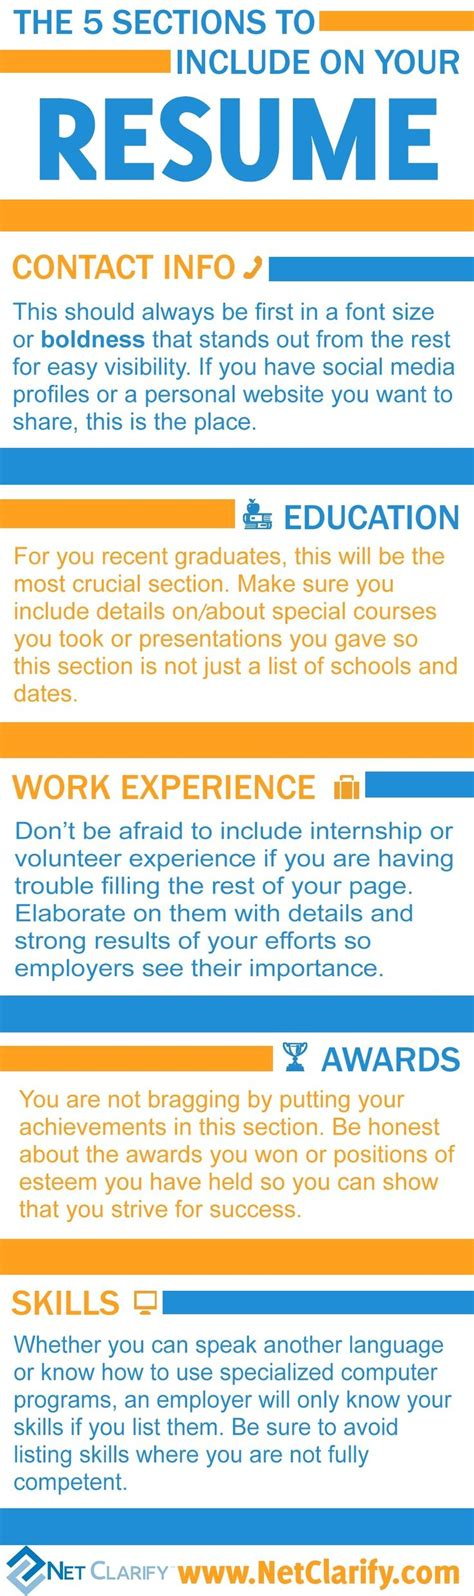 resume tips and ideas supplies resumes cover letters resumes extraordinaire